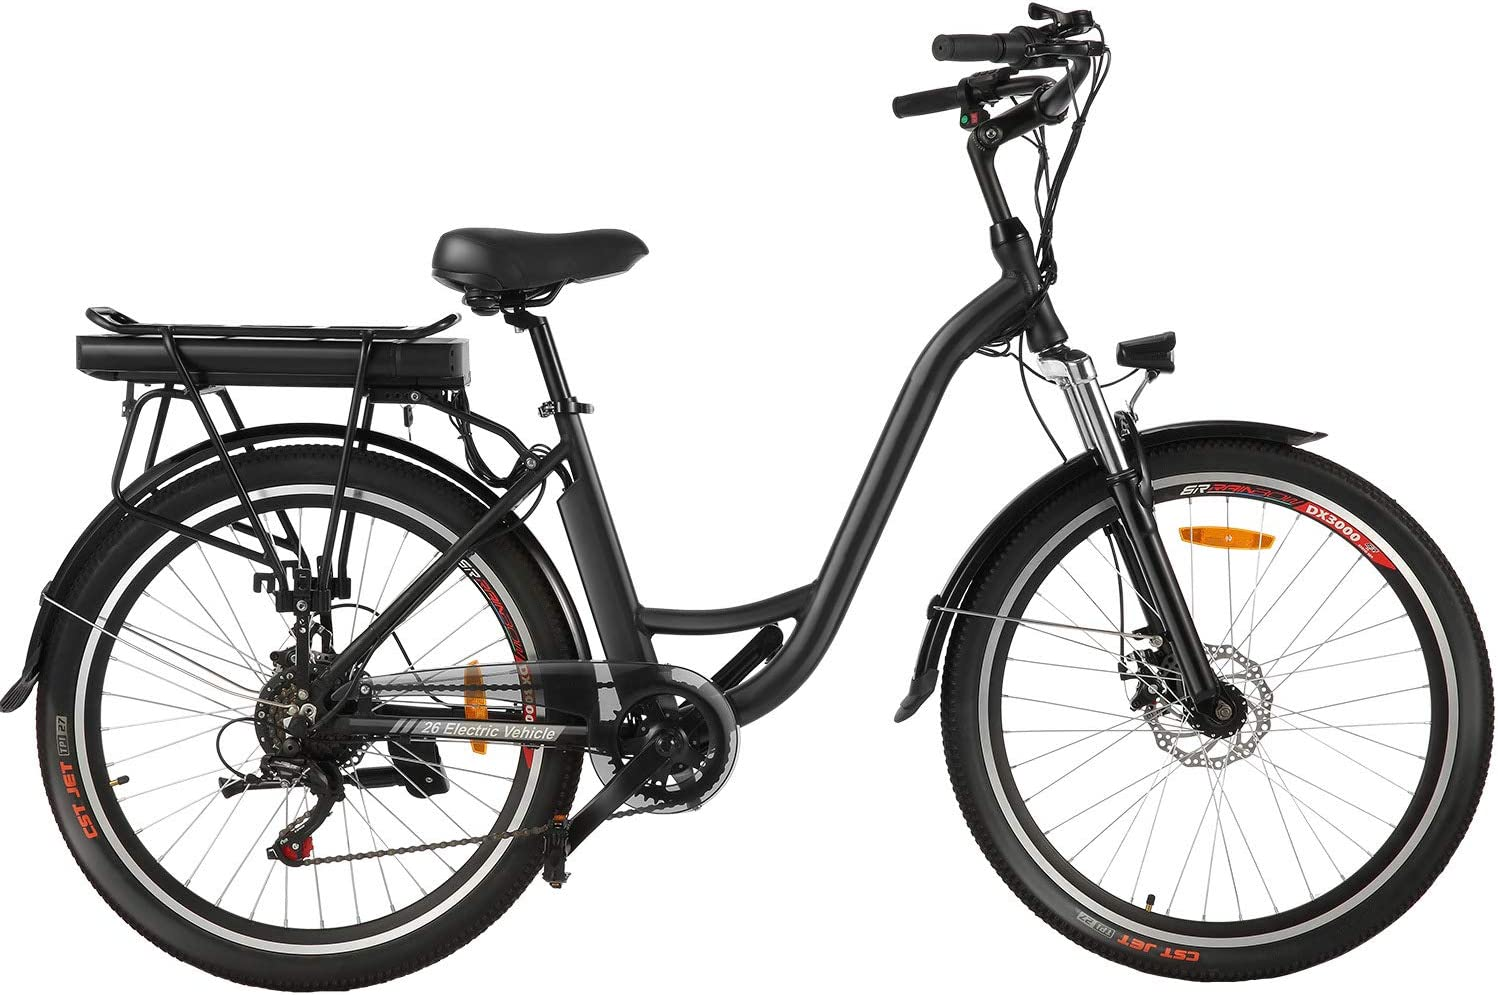 Speedrid ebike 26″ Electric City Bike with Removable 12.5Ah Lithium-ion Battery WAS £849.99 + £20 delivery NOW £799.99 + £20 with £50 voucher on listing @ Amazon